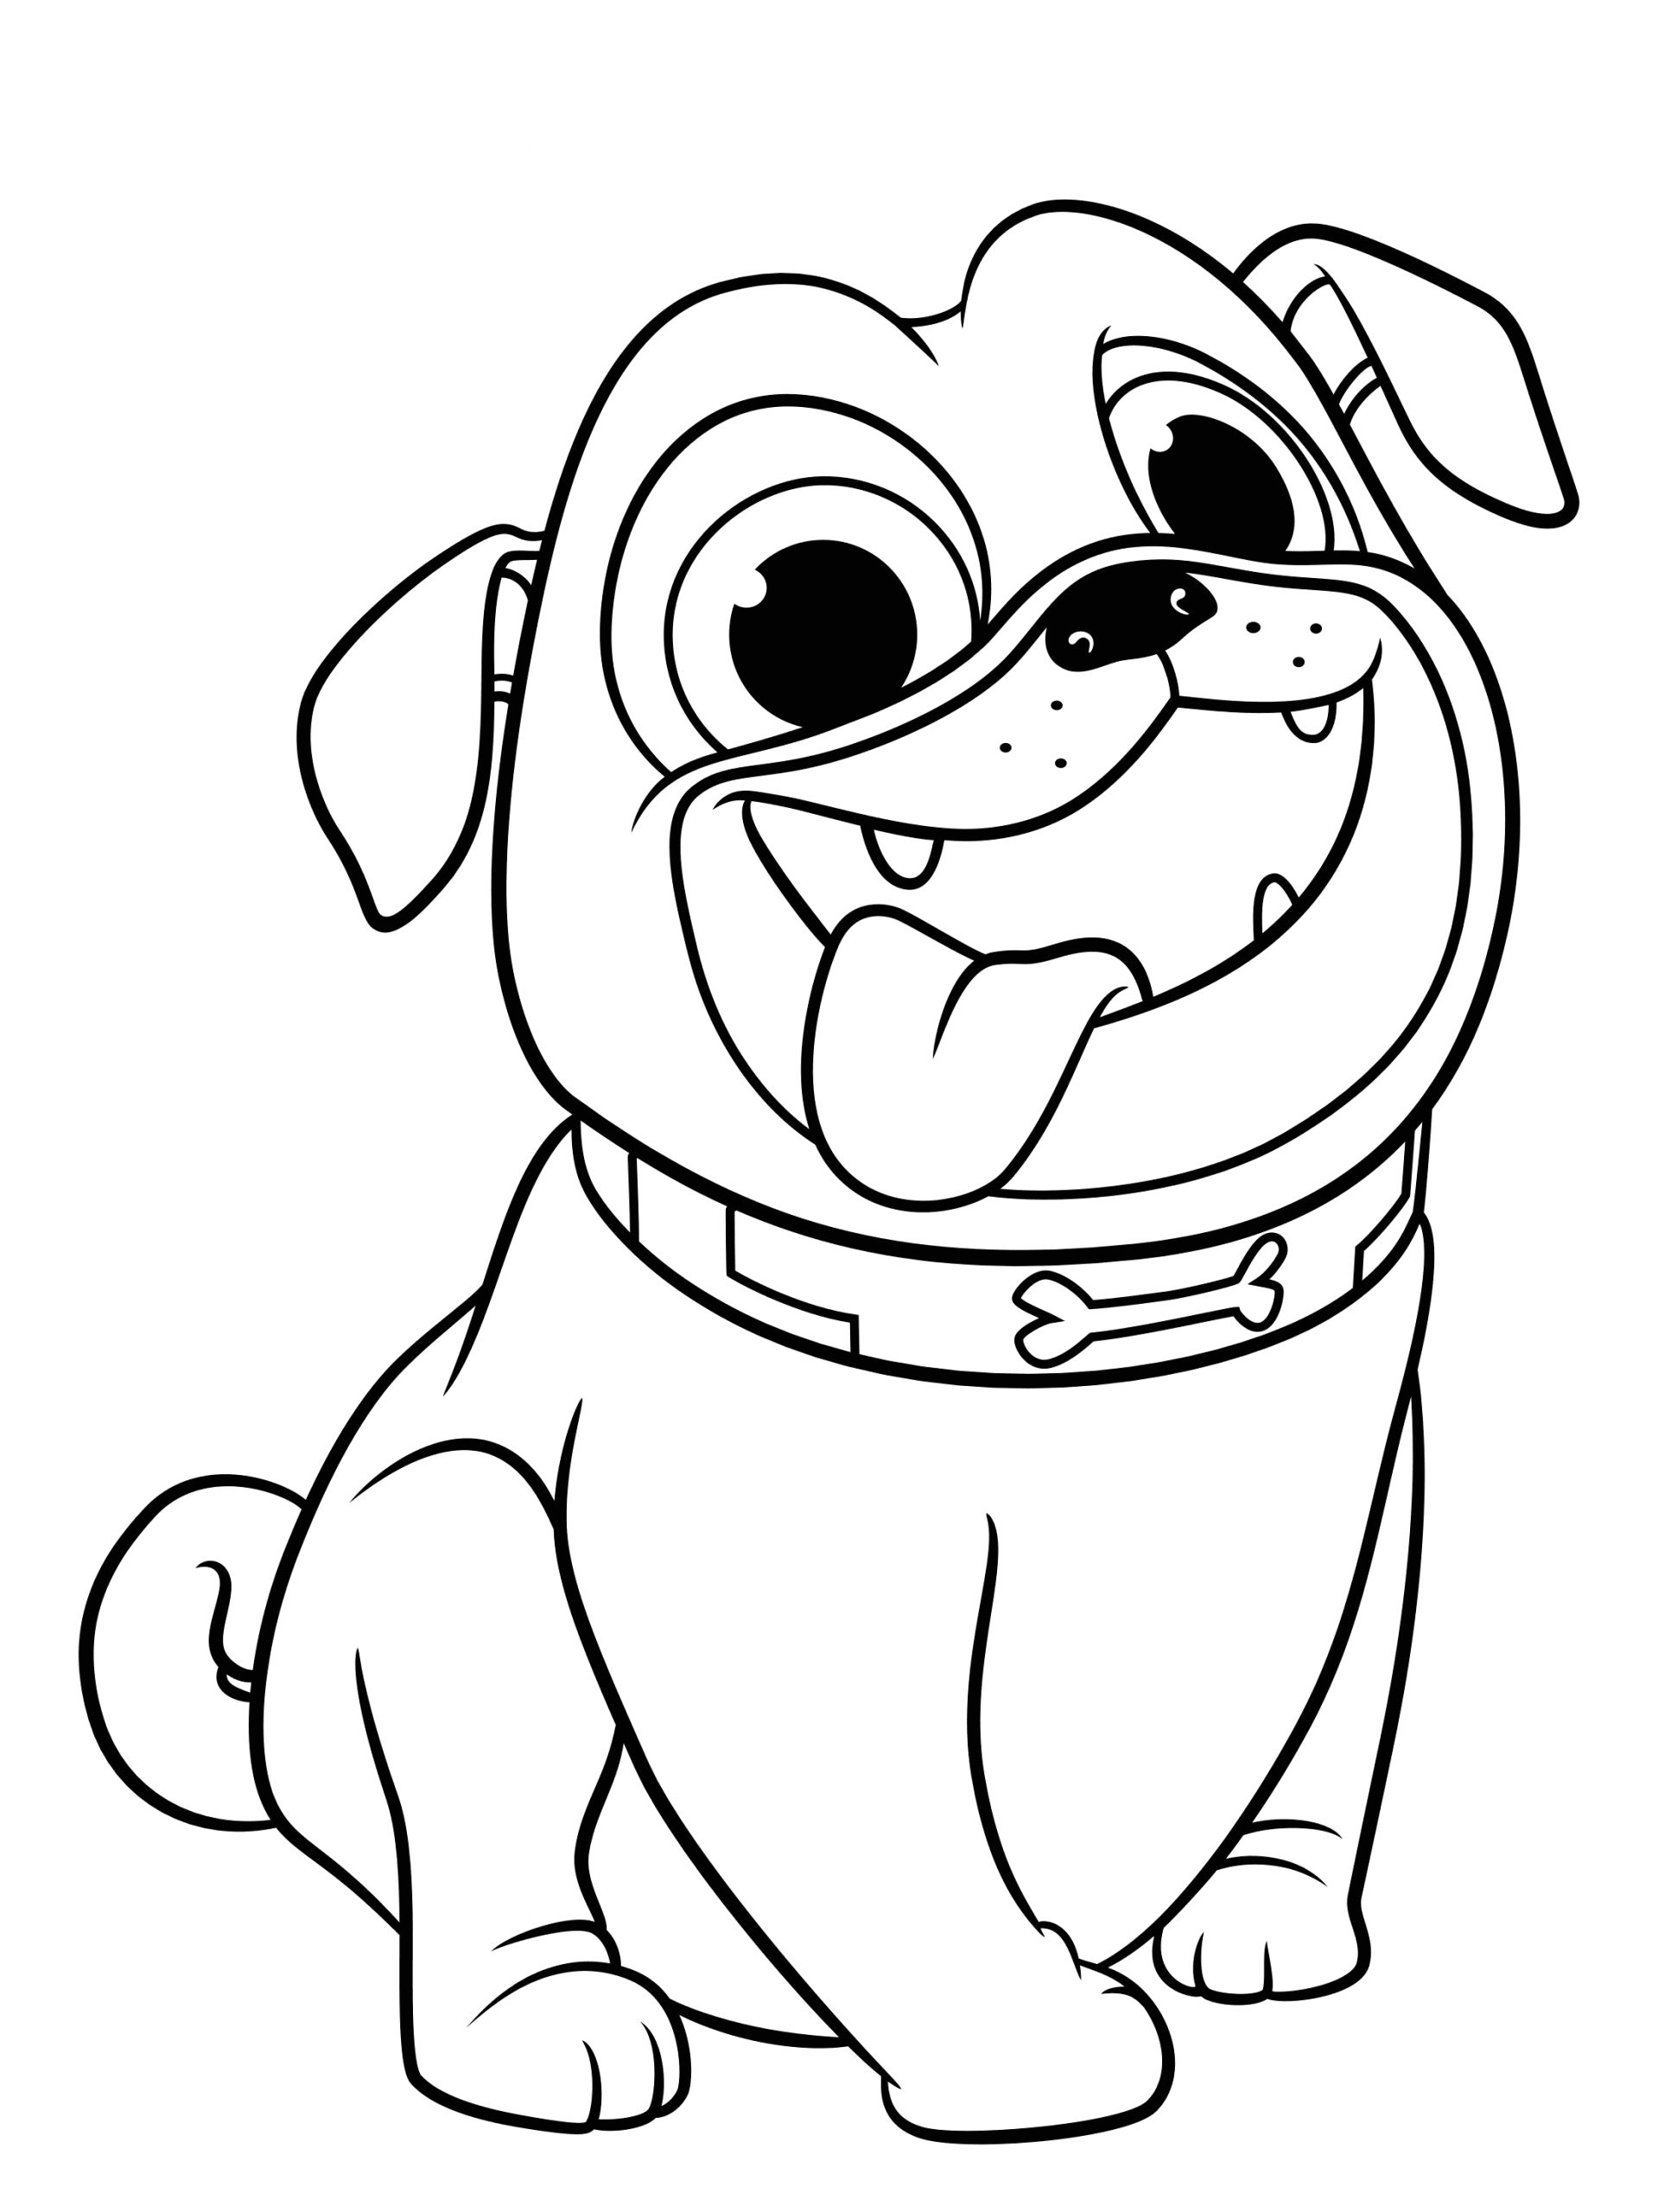 Free Printable Puppy Dog Pals Coloring Pages Puppy Dog Pals Coloring Pages to and Print for Free